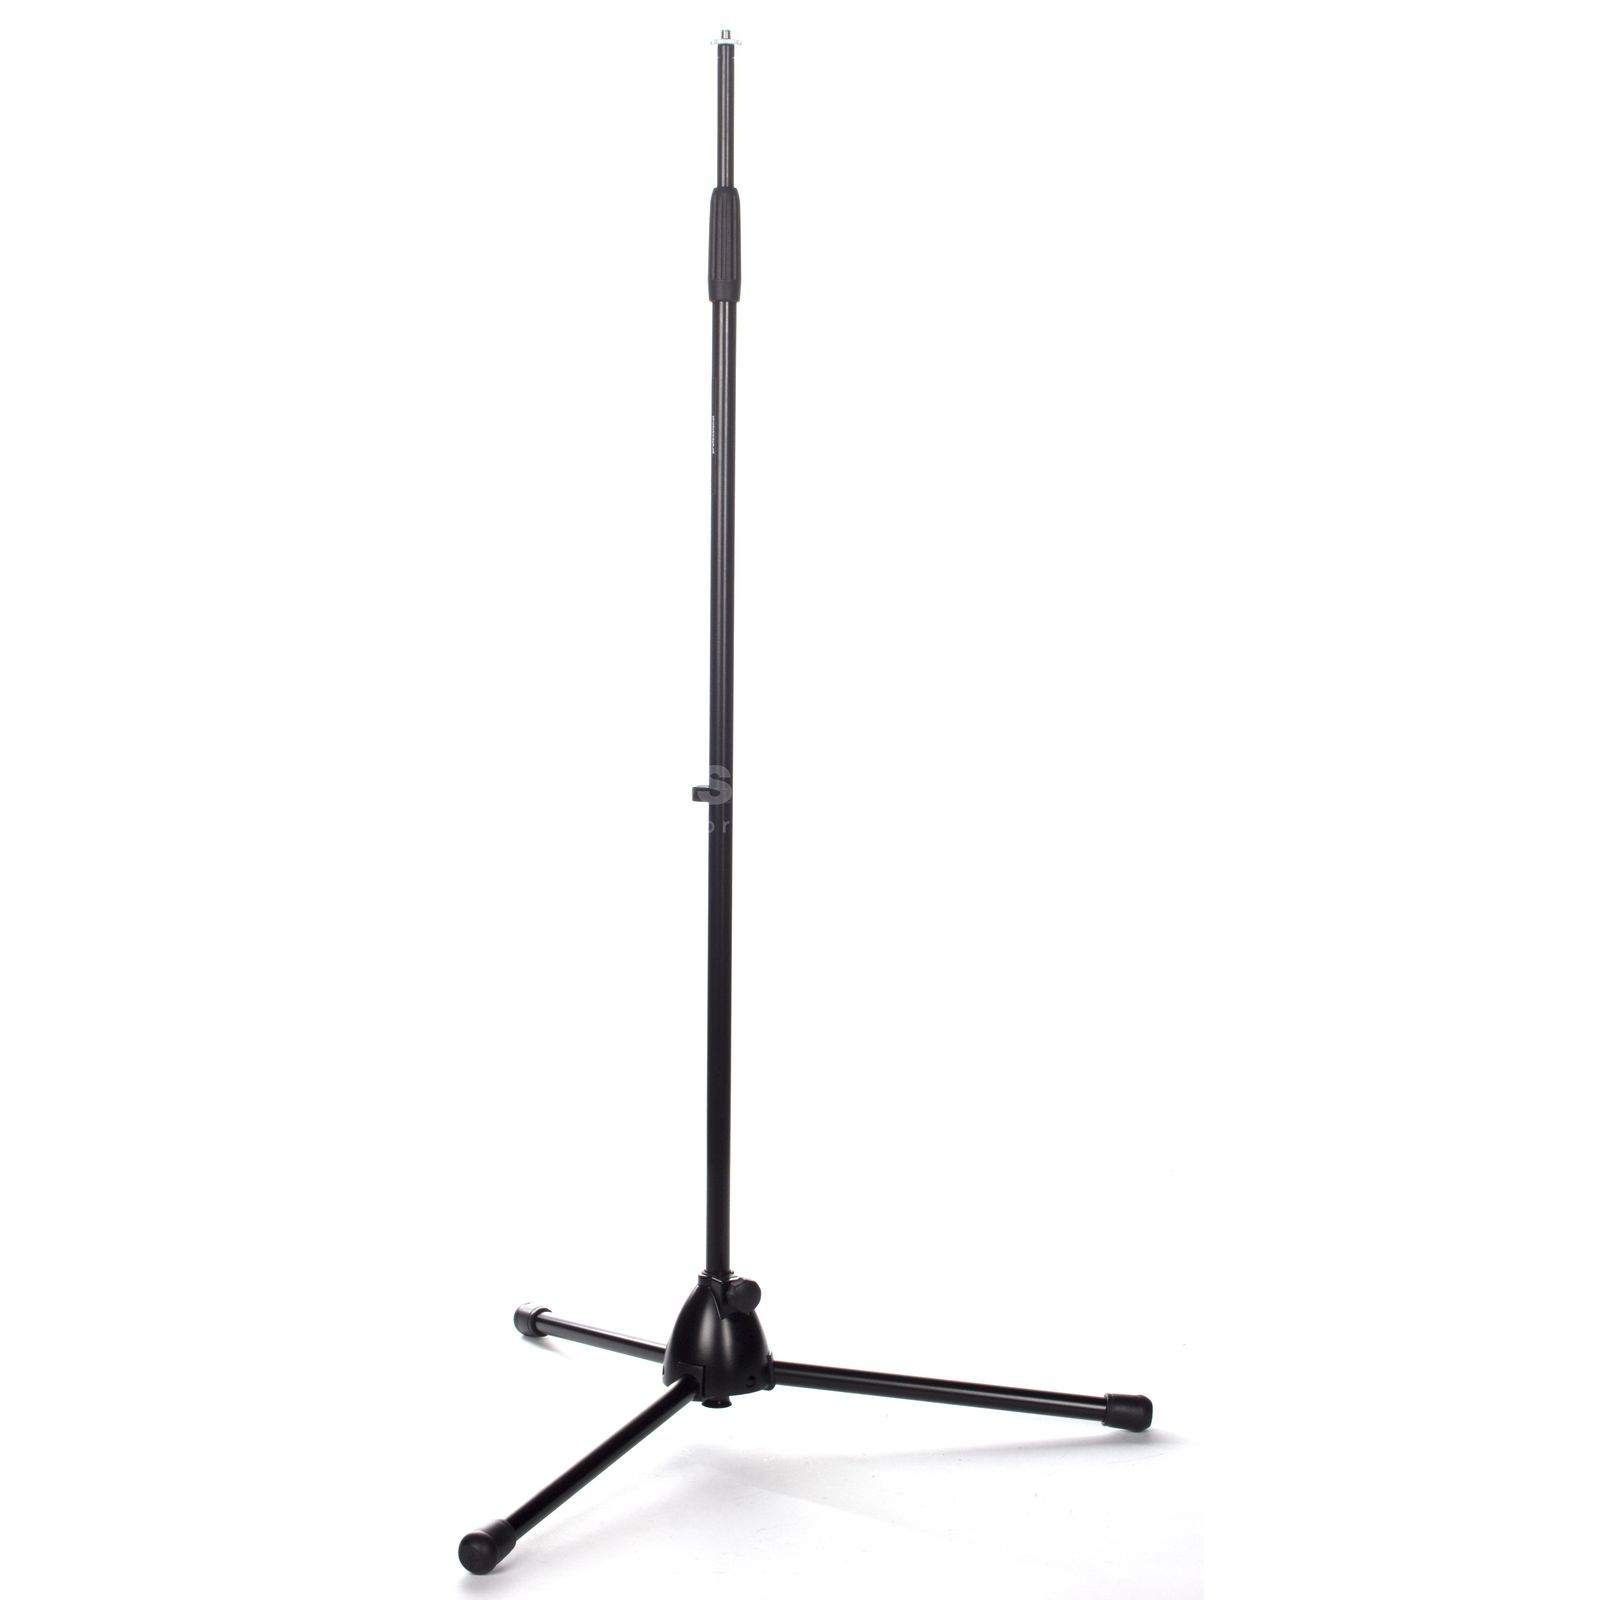 MUSIC STORE MIC 10 Nitro 2.1 Stand  Produktbillede